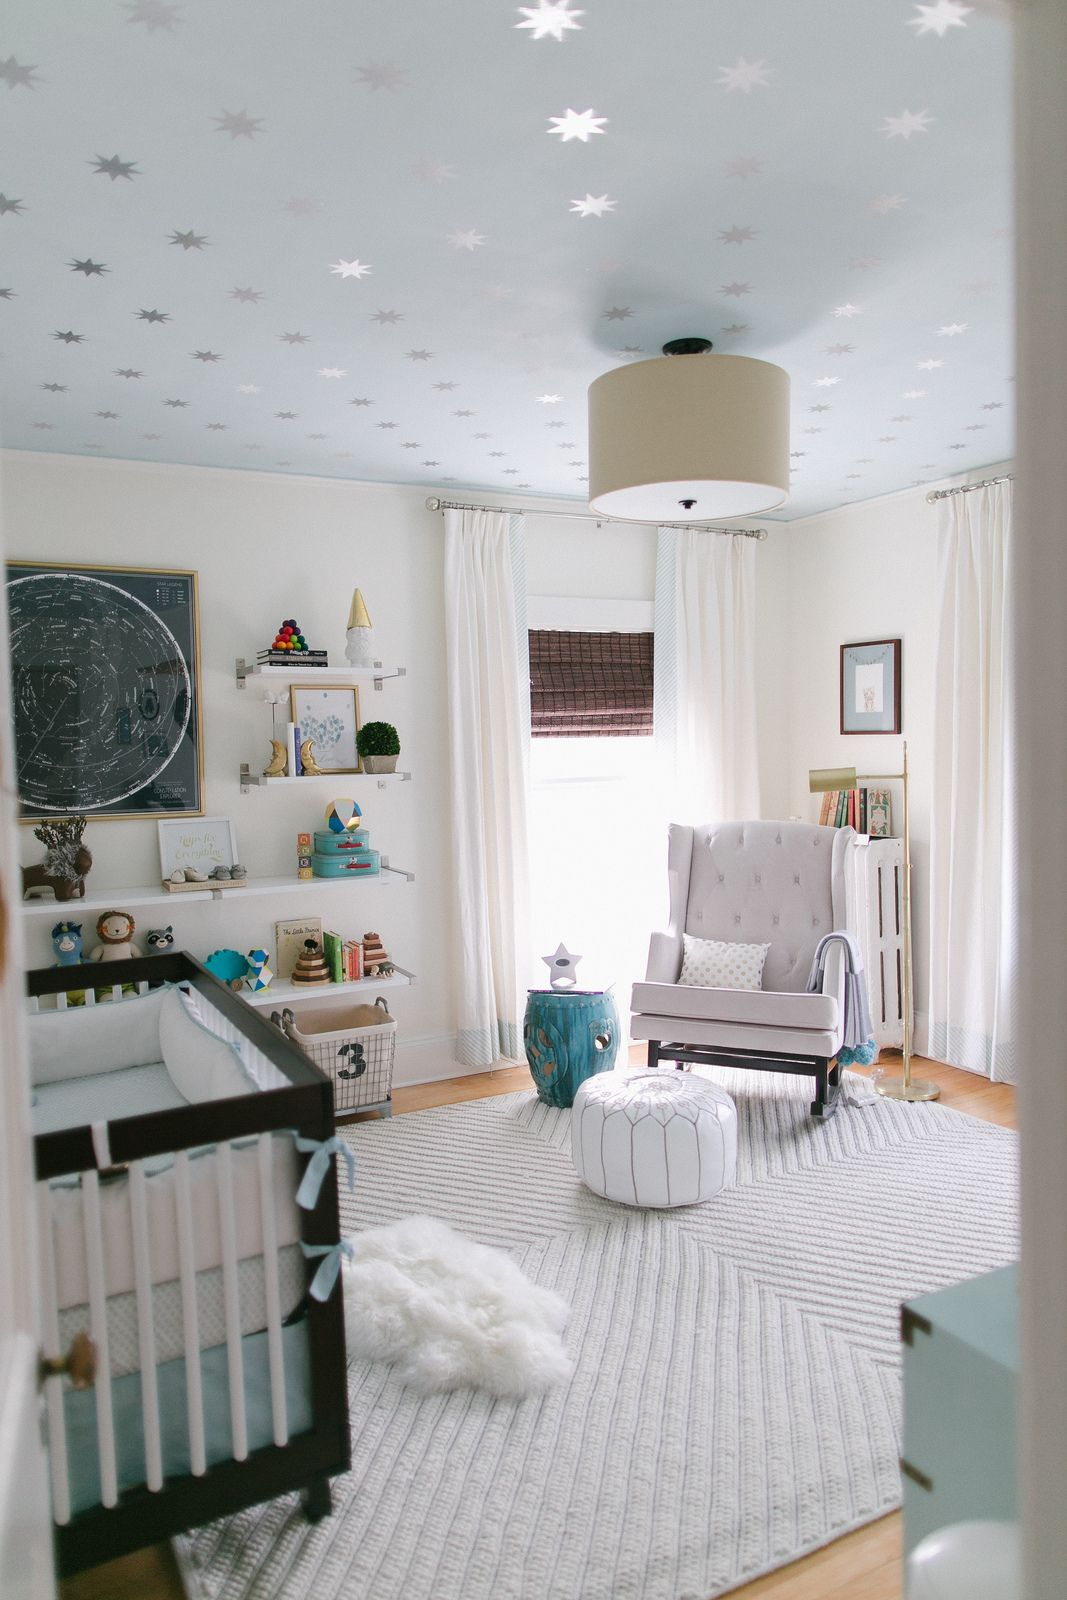 Paint colors that match this Apartment Therapy photo: SW 6258 Tricorn Black, SW…